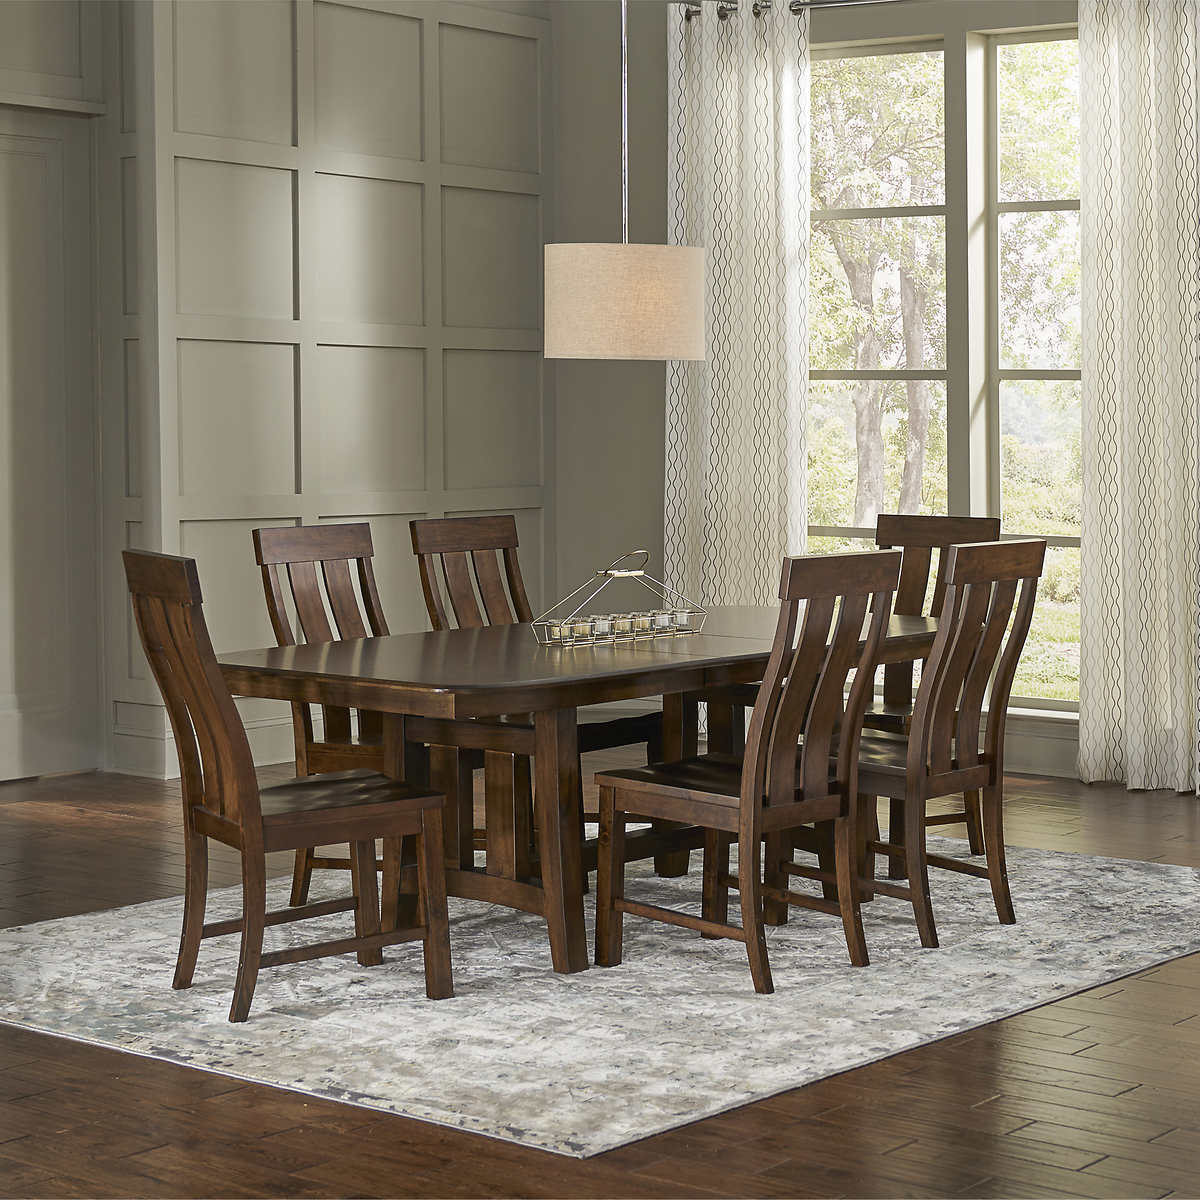 Foxvale 7 Piece Solid Wood Dining Room Set